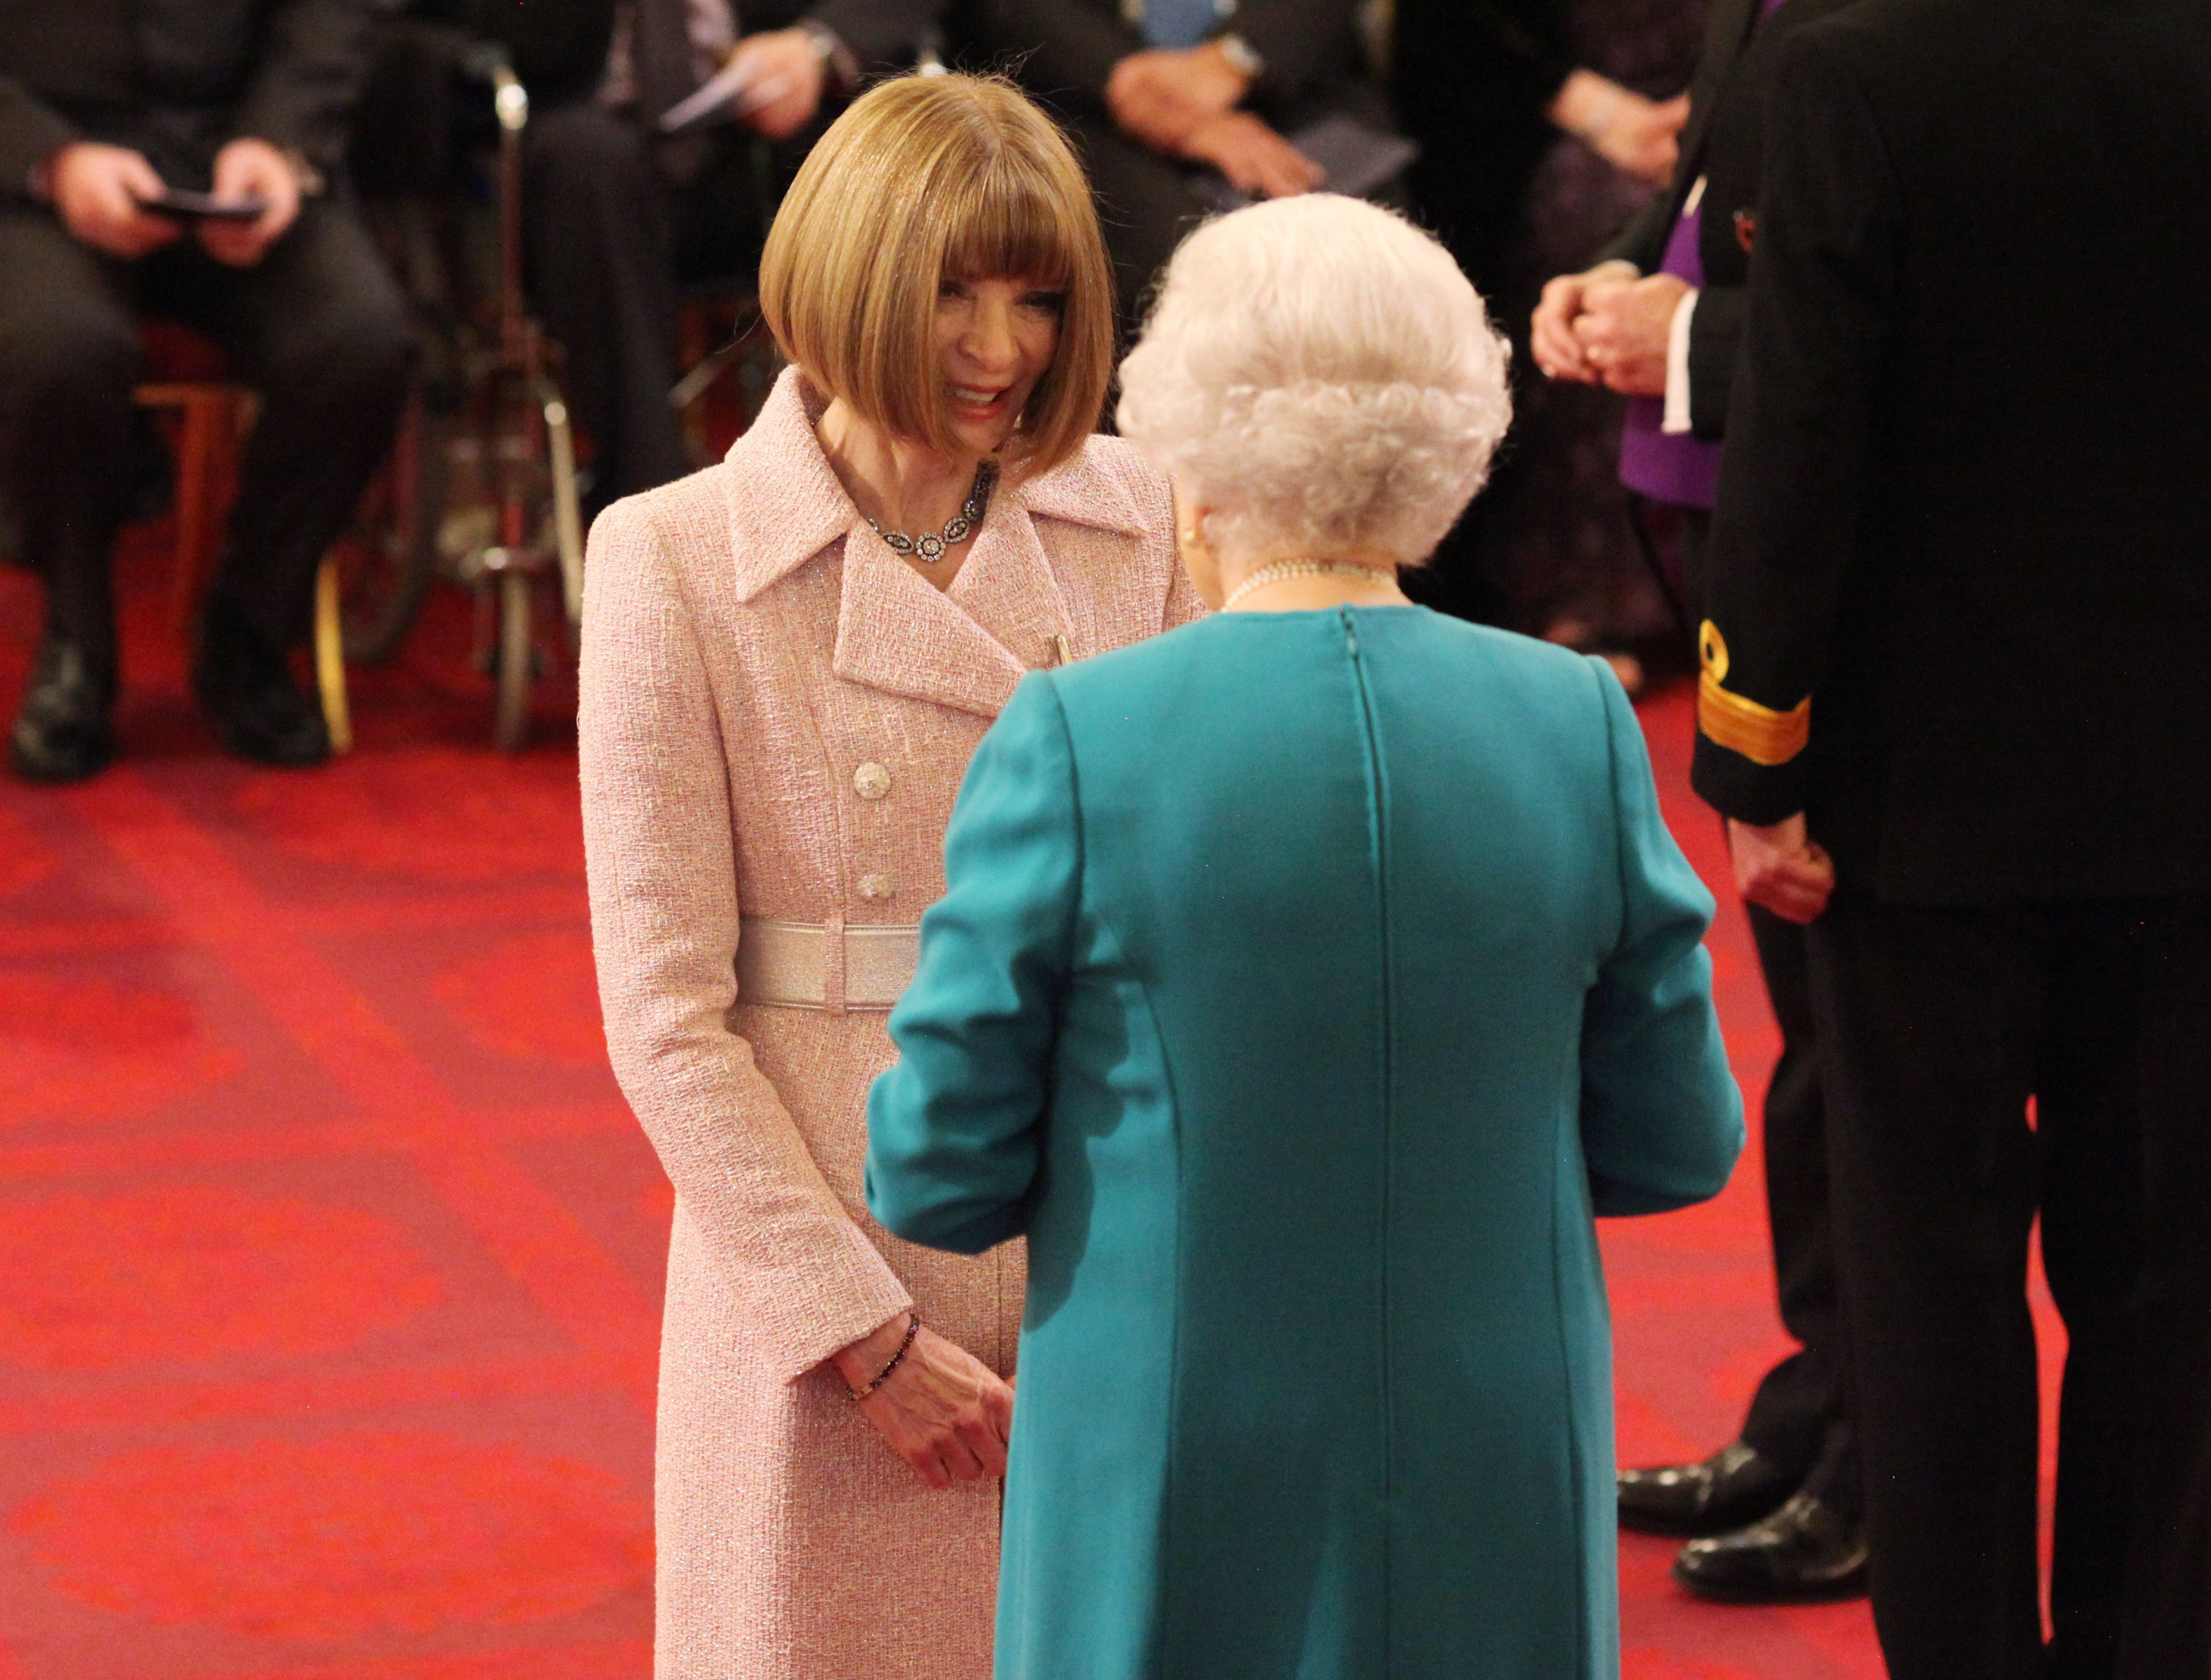 Anna Wintour is made a Dame Commander of the British Empire by Queen Elizabeth II, during an Investiture ceremony at Buckingham Palace, London